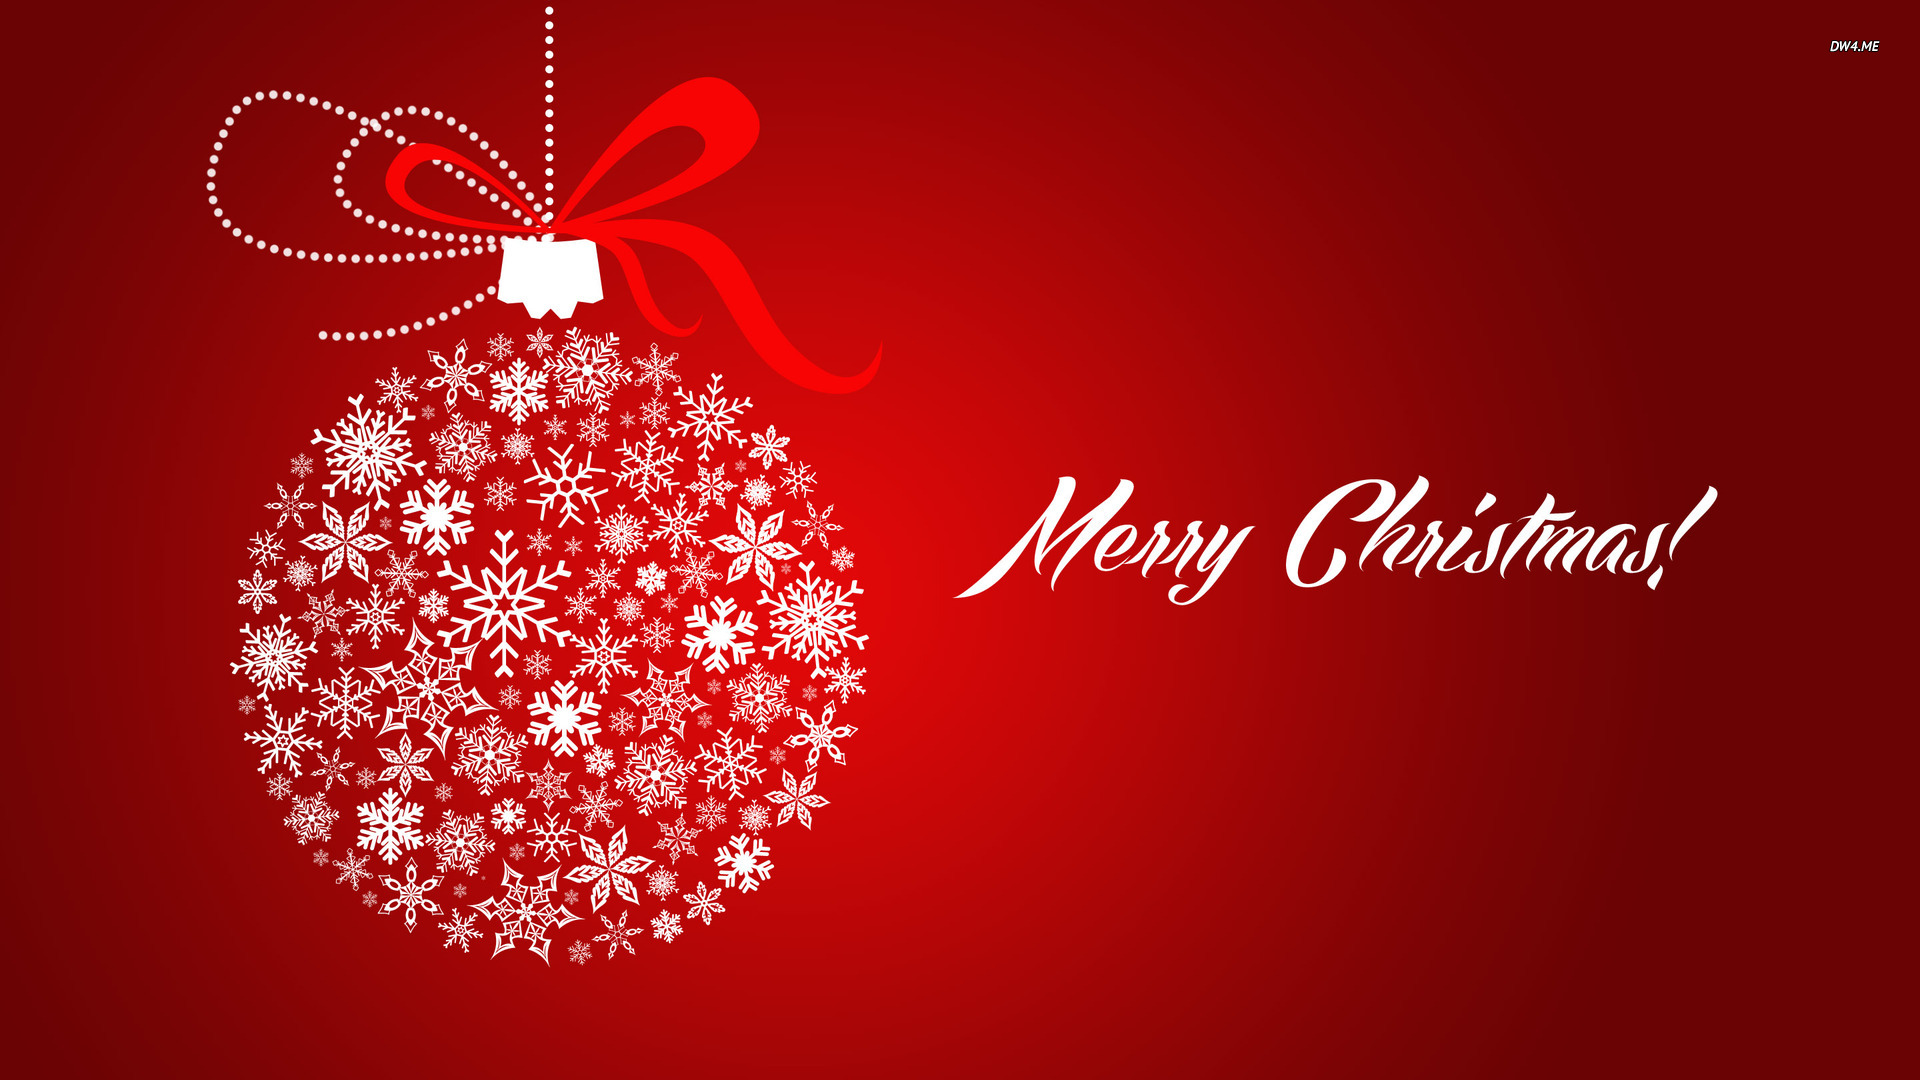 Merry Christmas wallpaper   Holiday wallpapers   2075 1920x1080